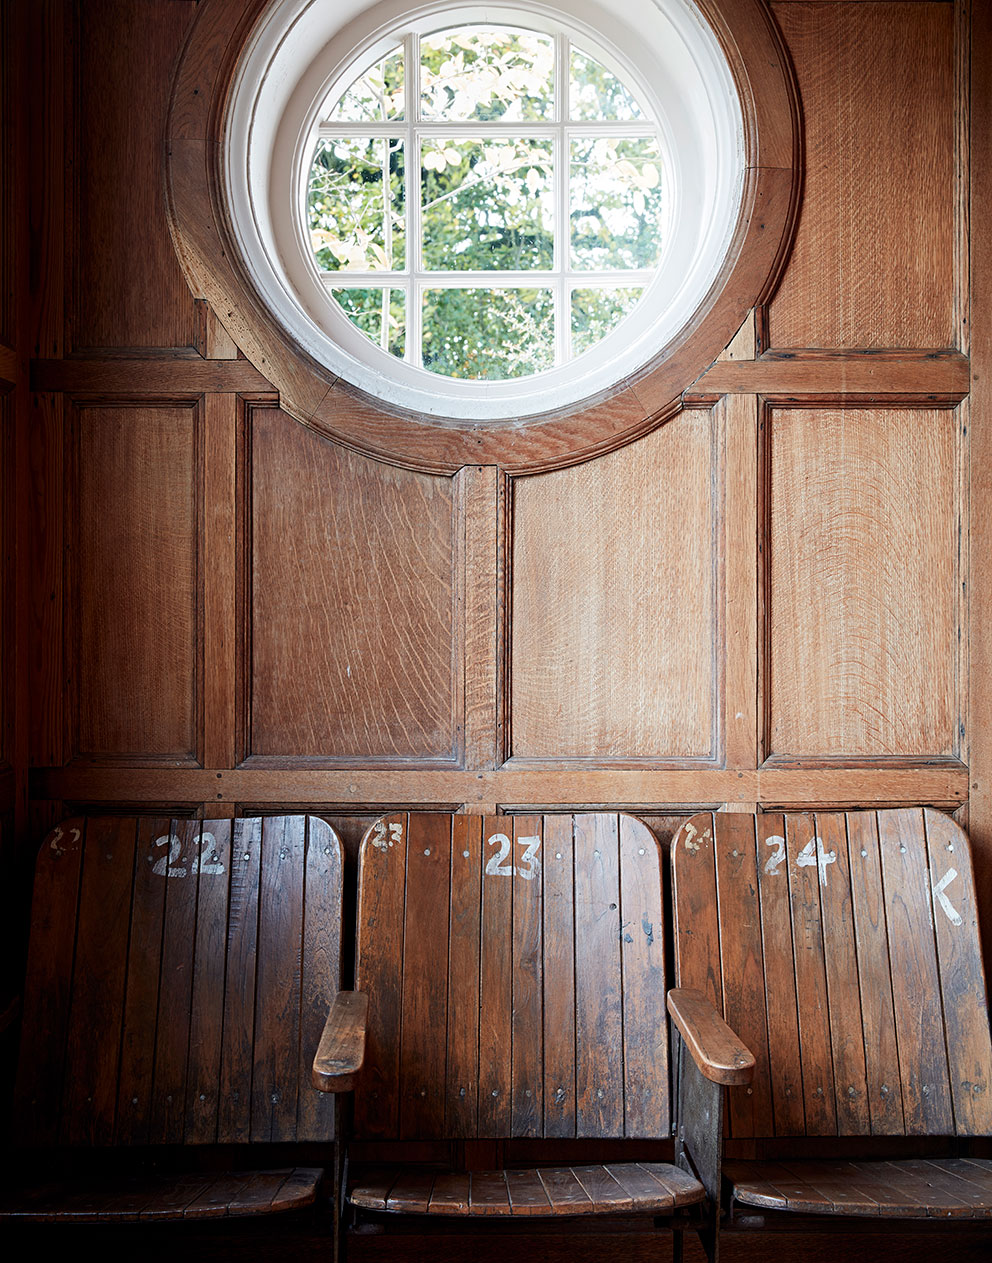 Imaginative interior design showing round window, wood paneling and vintage wooden folding seats